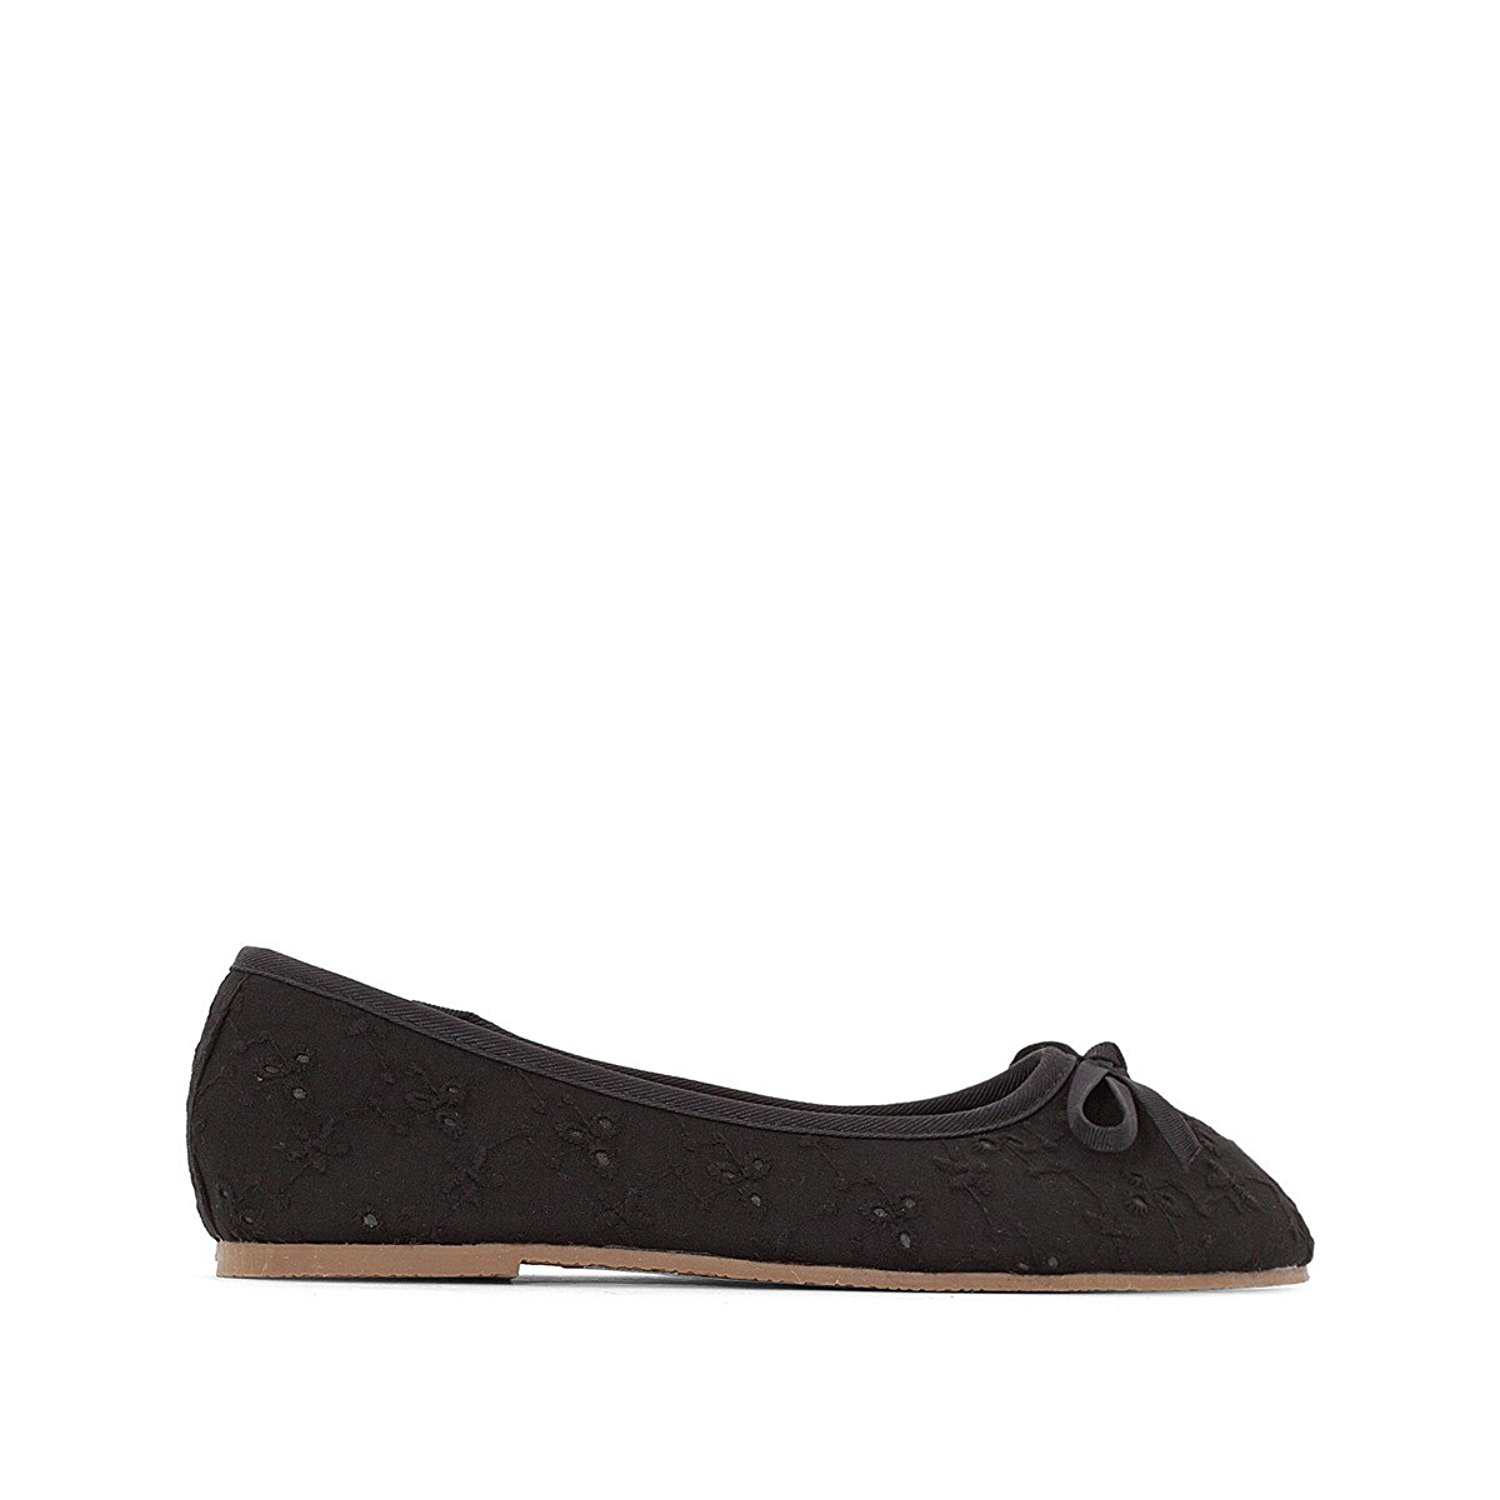 Tick Girls Black Touch Fasten Bar Plimsolls Shoe-81275 recommend to wear in on every day in 2019